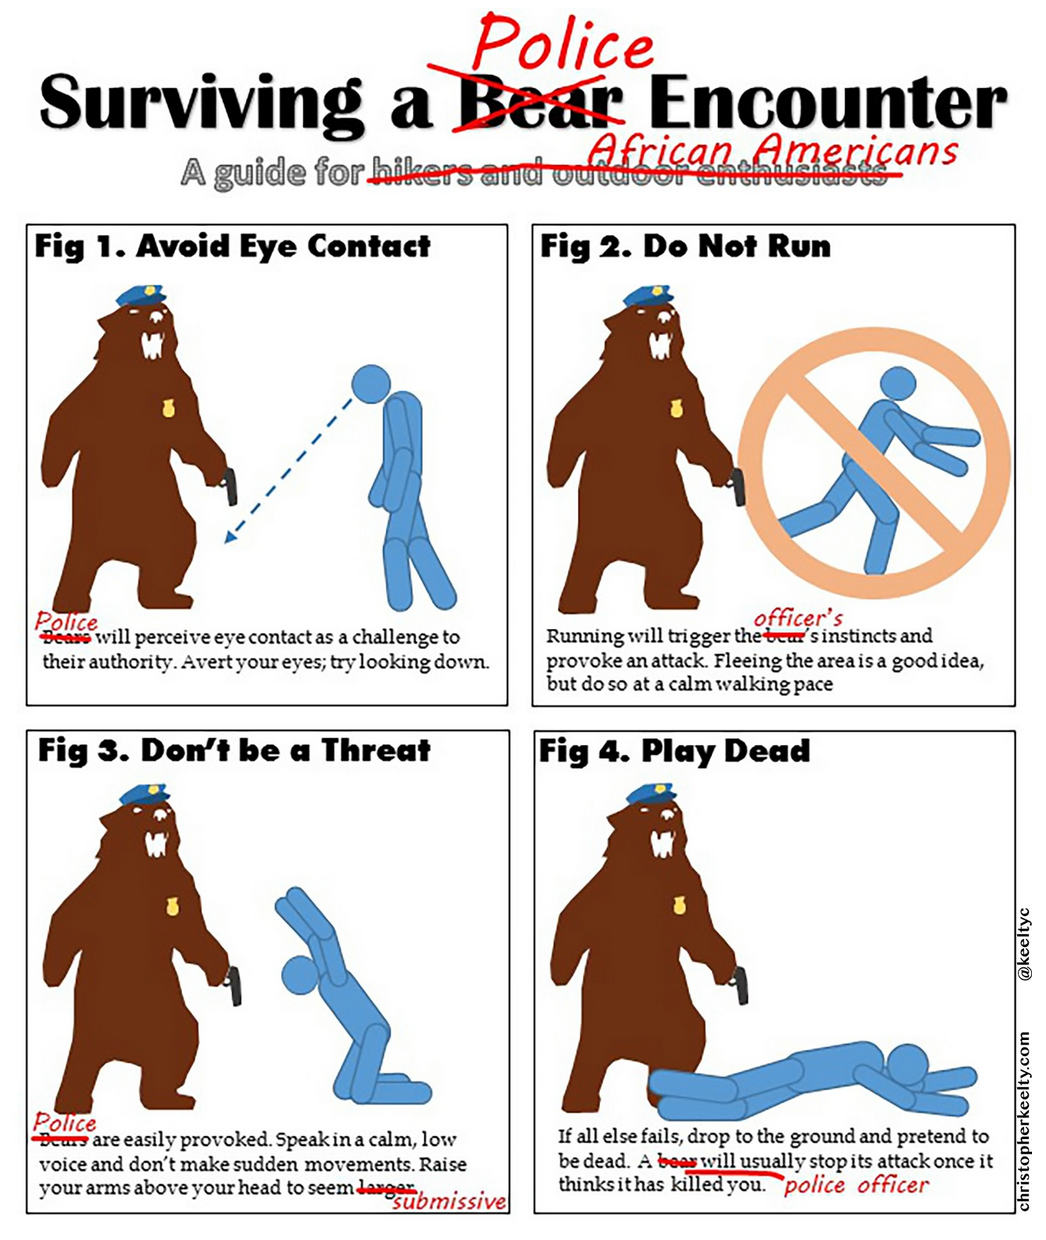 Surviving a Police Encounter: A Guide for African Americans""